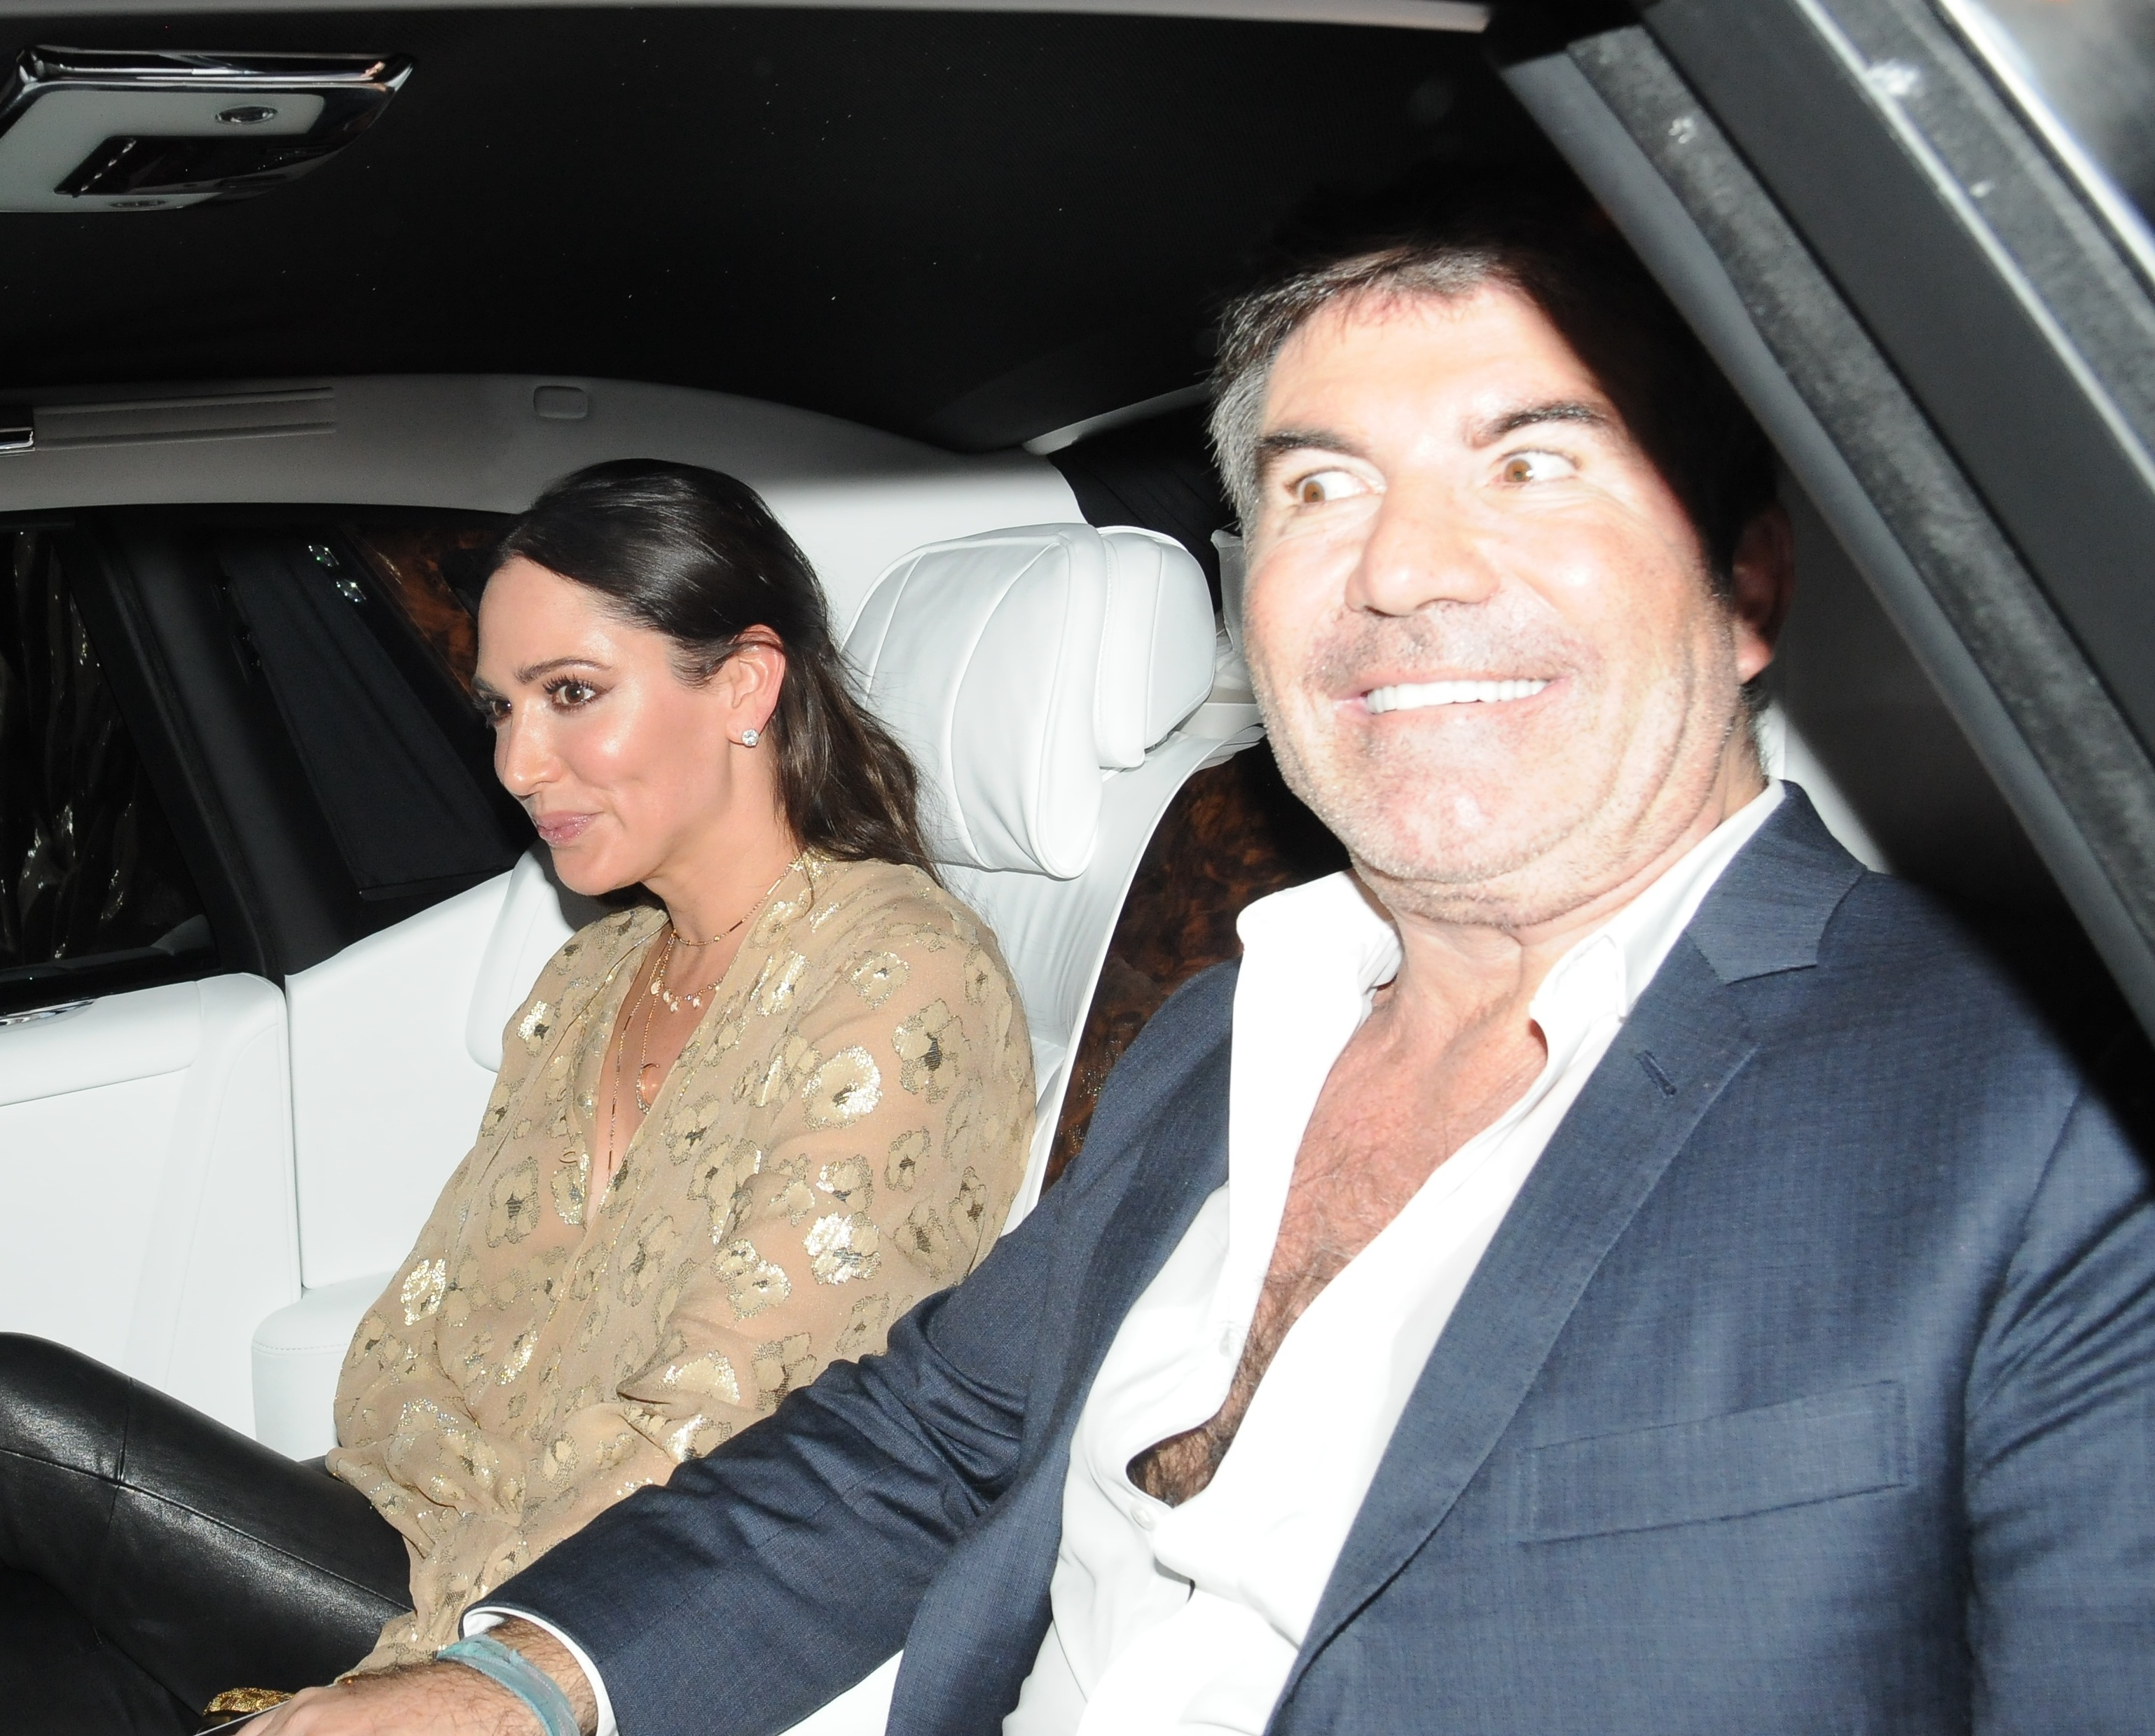 Simon Cowell looks seriously uncomfortable when asked about Lauren Silverman proposal plans